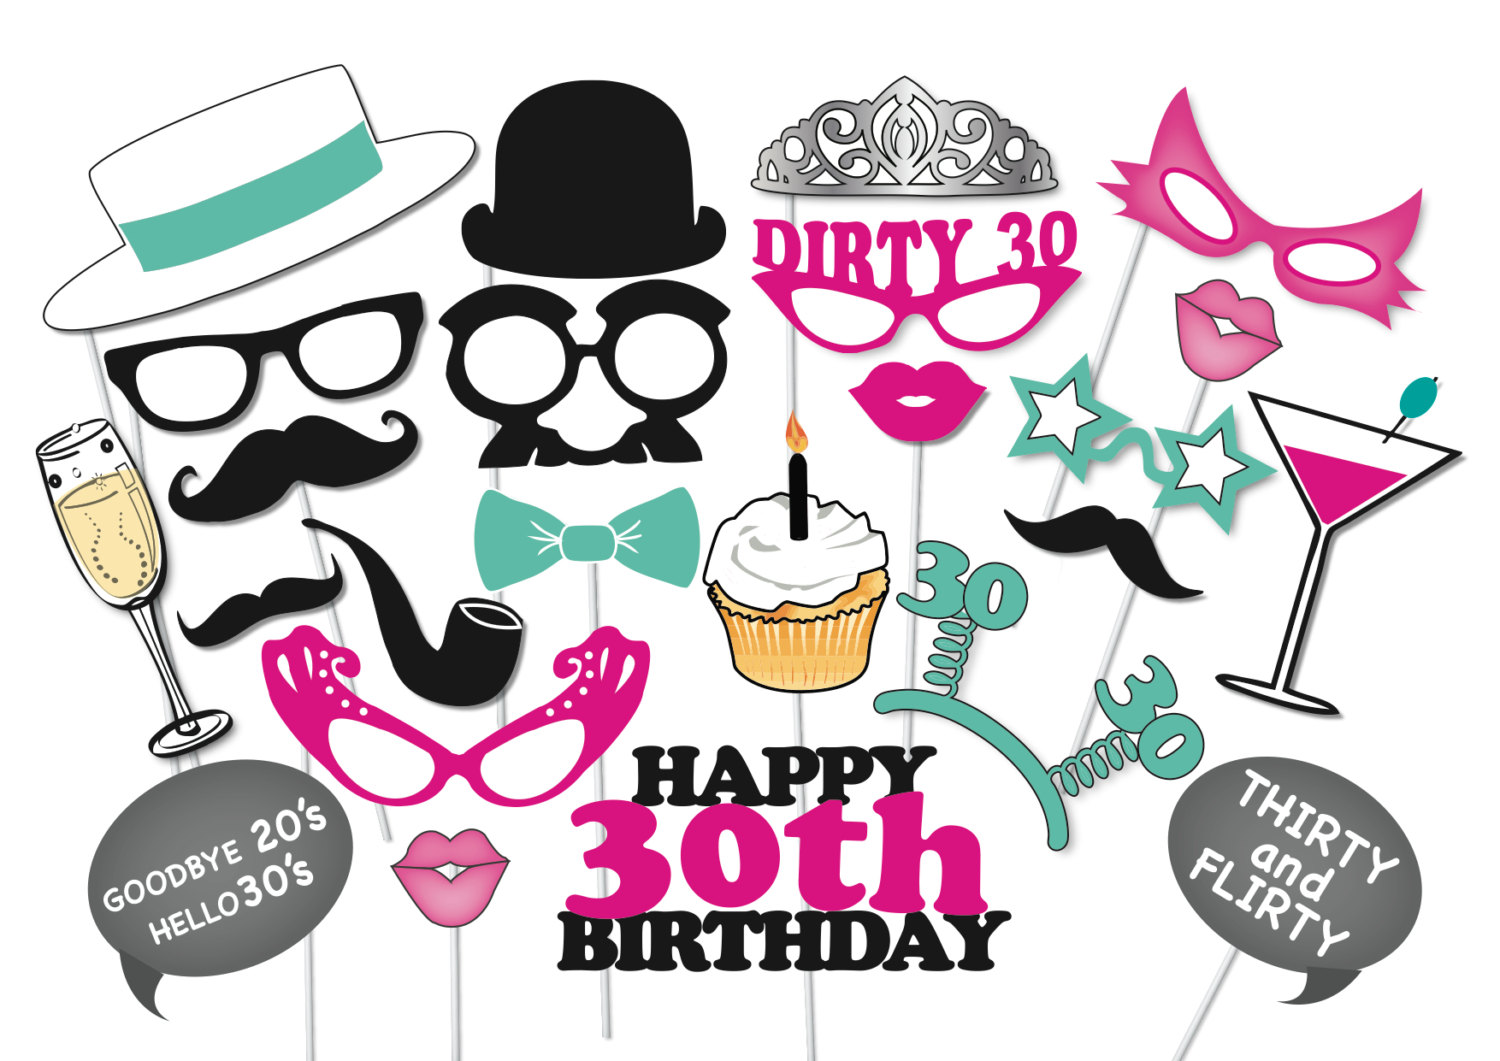 30th birthday clipart ; 80927